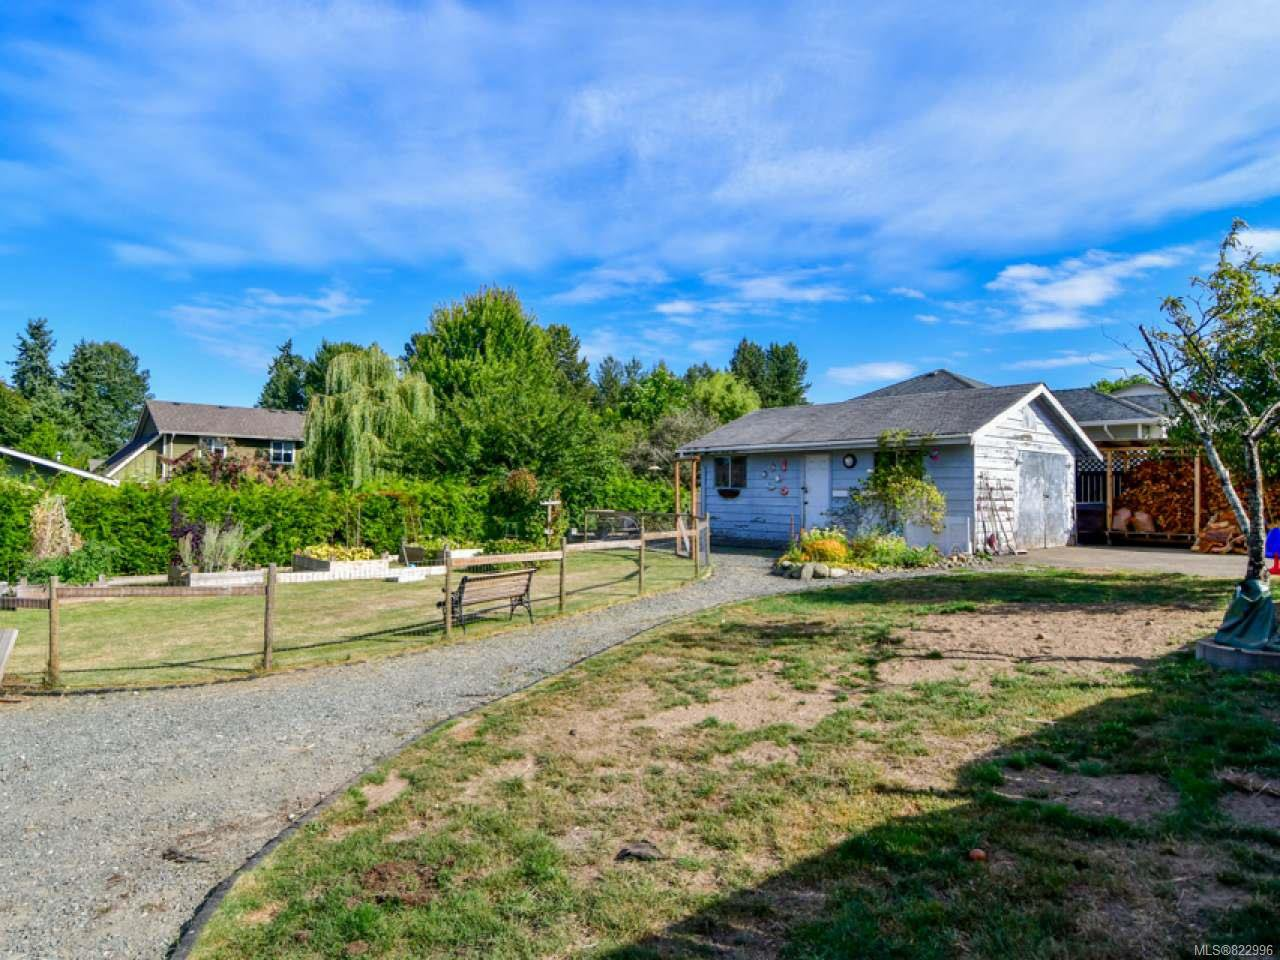 Photo 11: Photos: 691 Holm Rd in CAMPBELL RIVER: CR Willow Point House for sale (Campbell River)  : MLS®# 822996